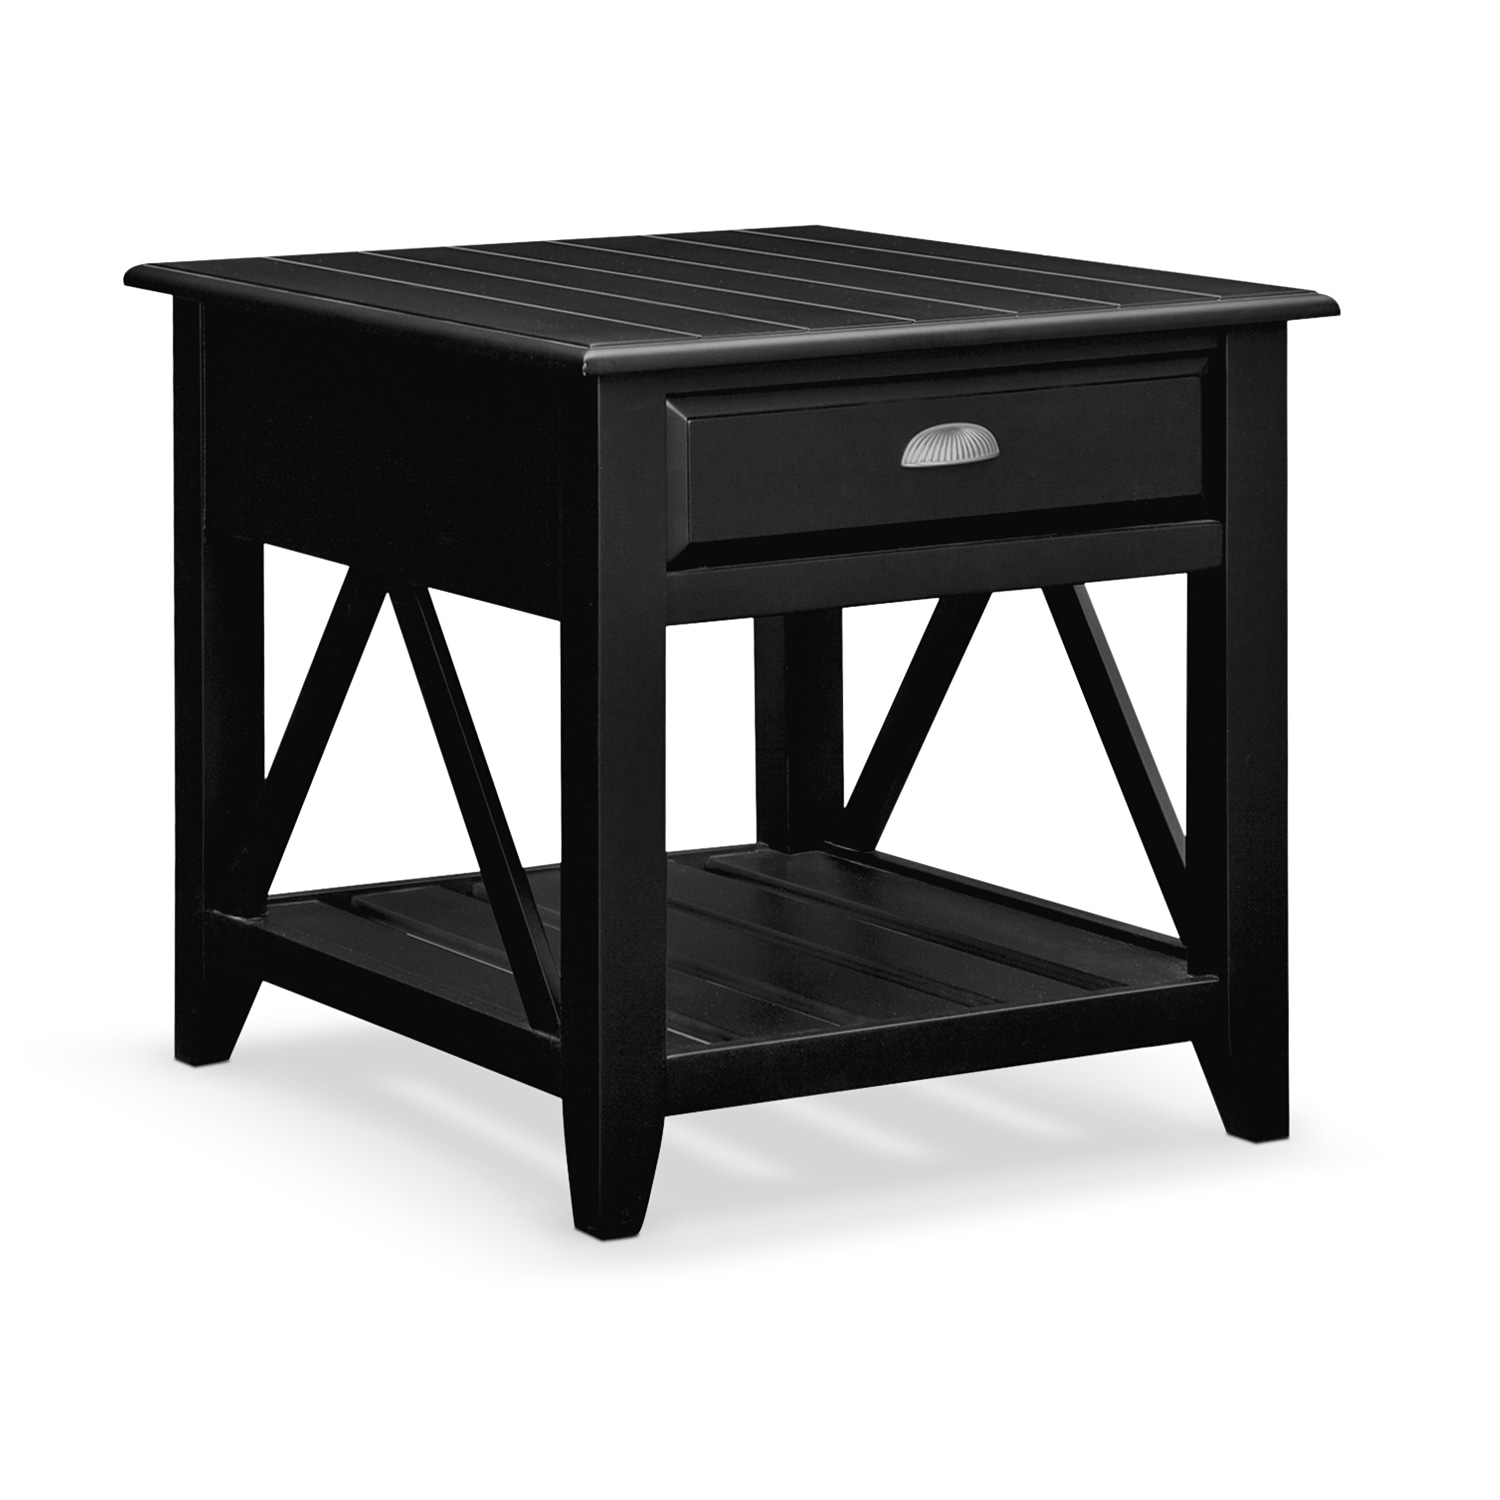 daniel drawer black accent table from winsomewood linens plantation cove coastal end value city furniture with globe lamp outdoor coffee small couch tables inch square vinyl